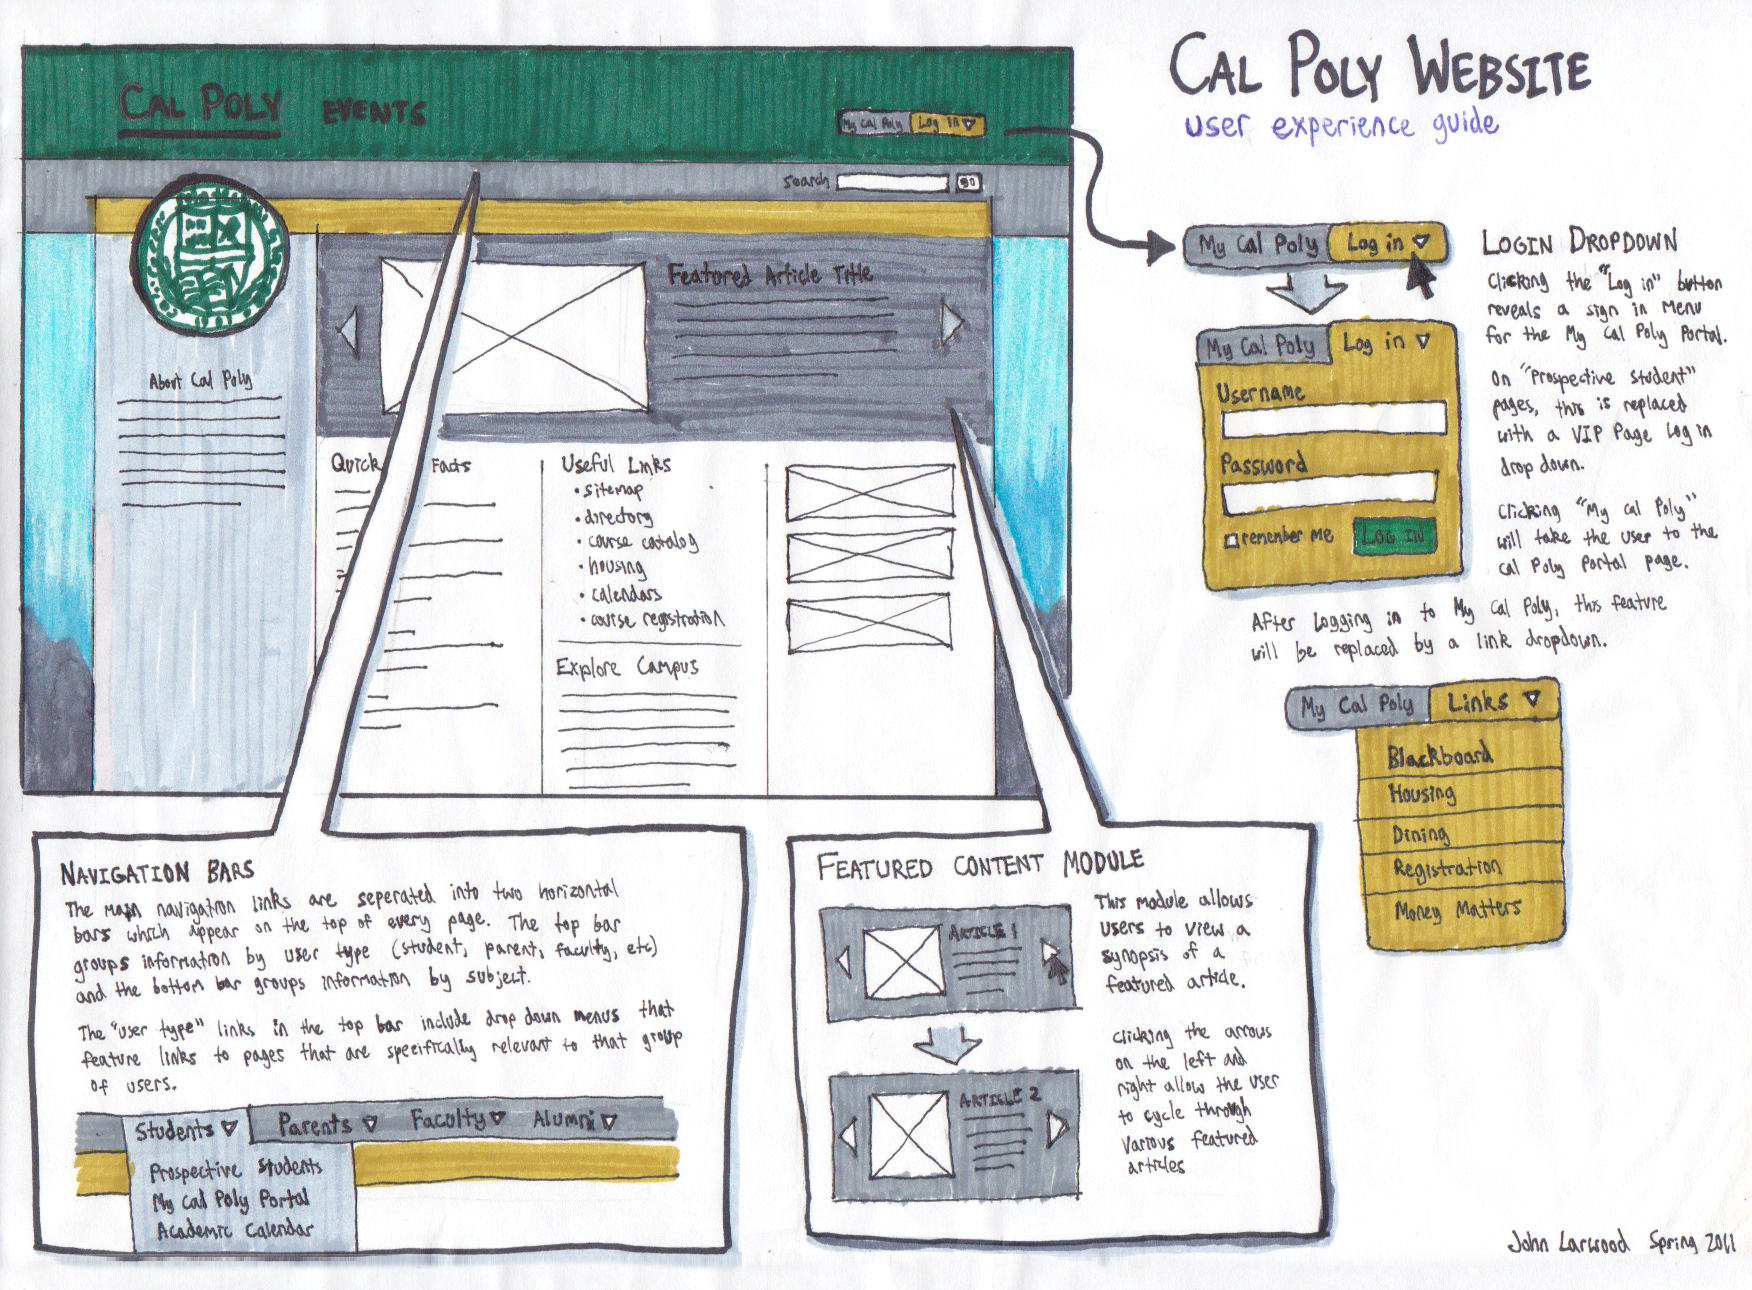 Cal Poly Website user guide sketch